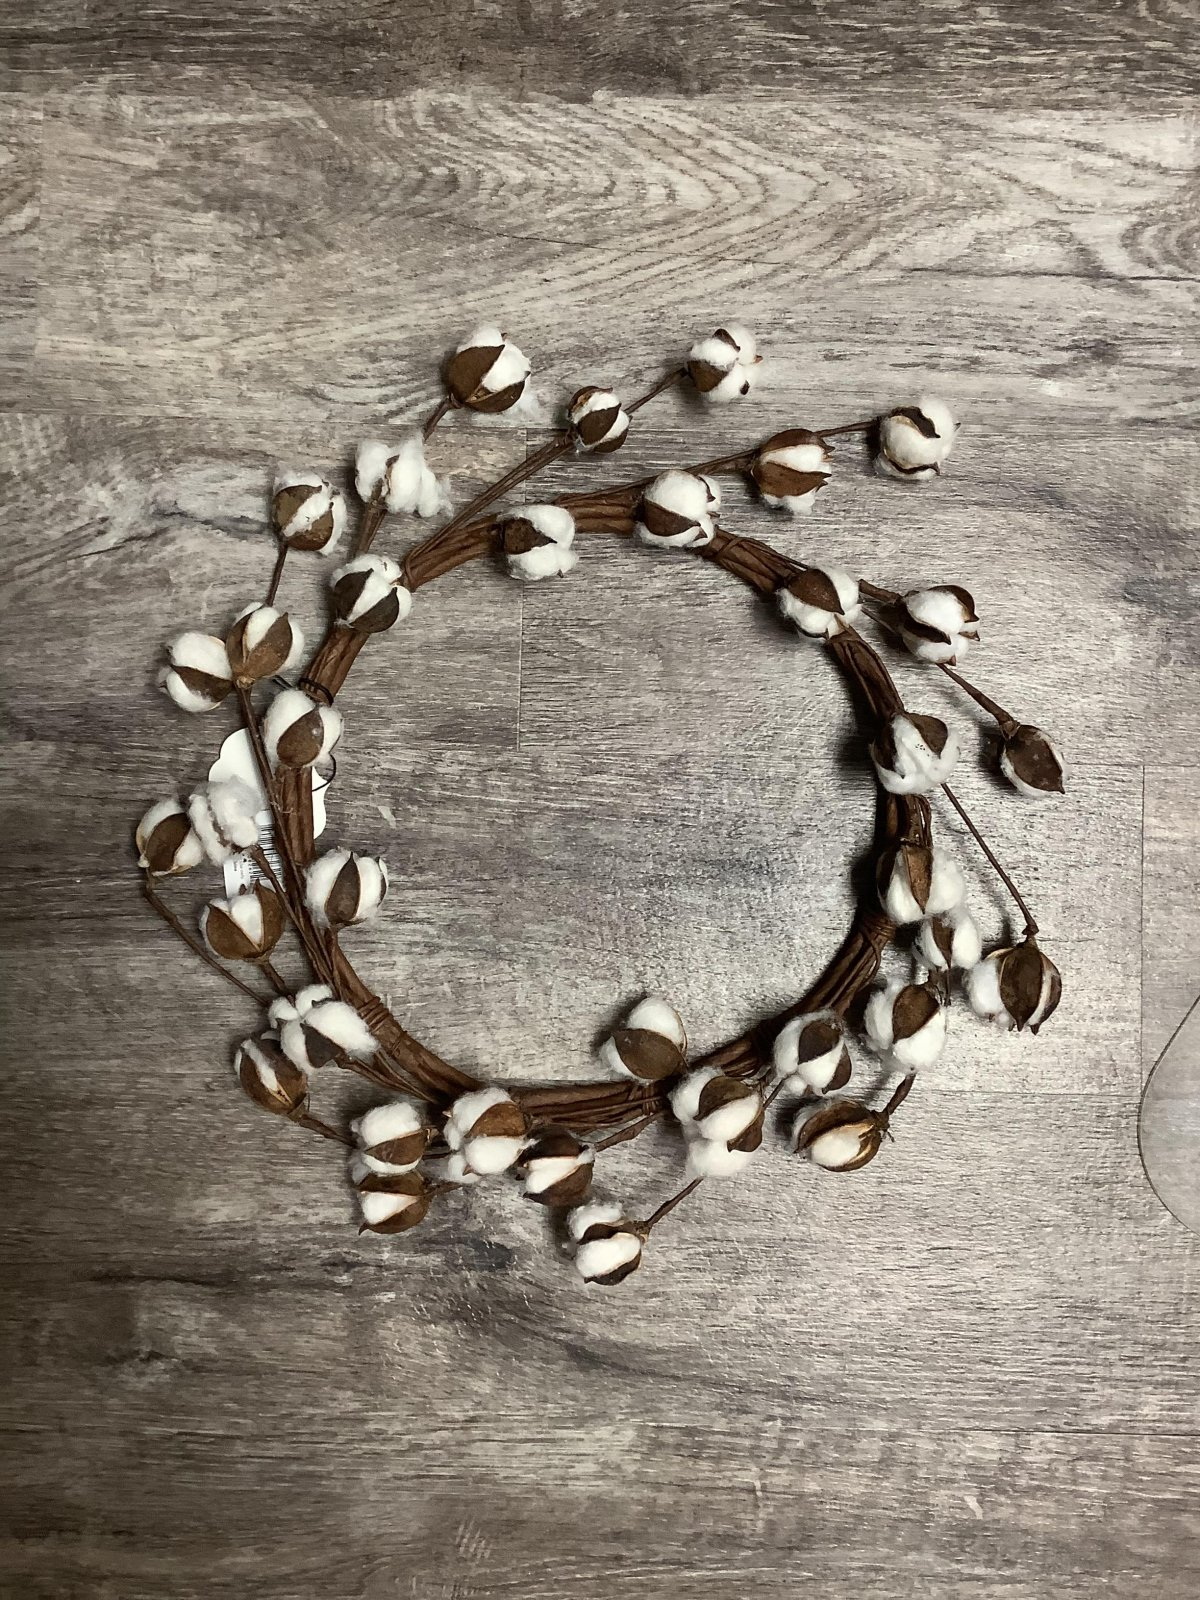 Large Cotton Ball Wreaths 13 inches in diameter